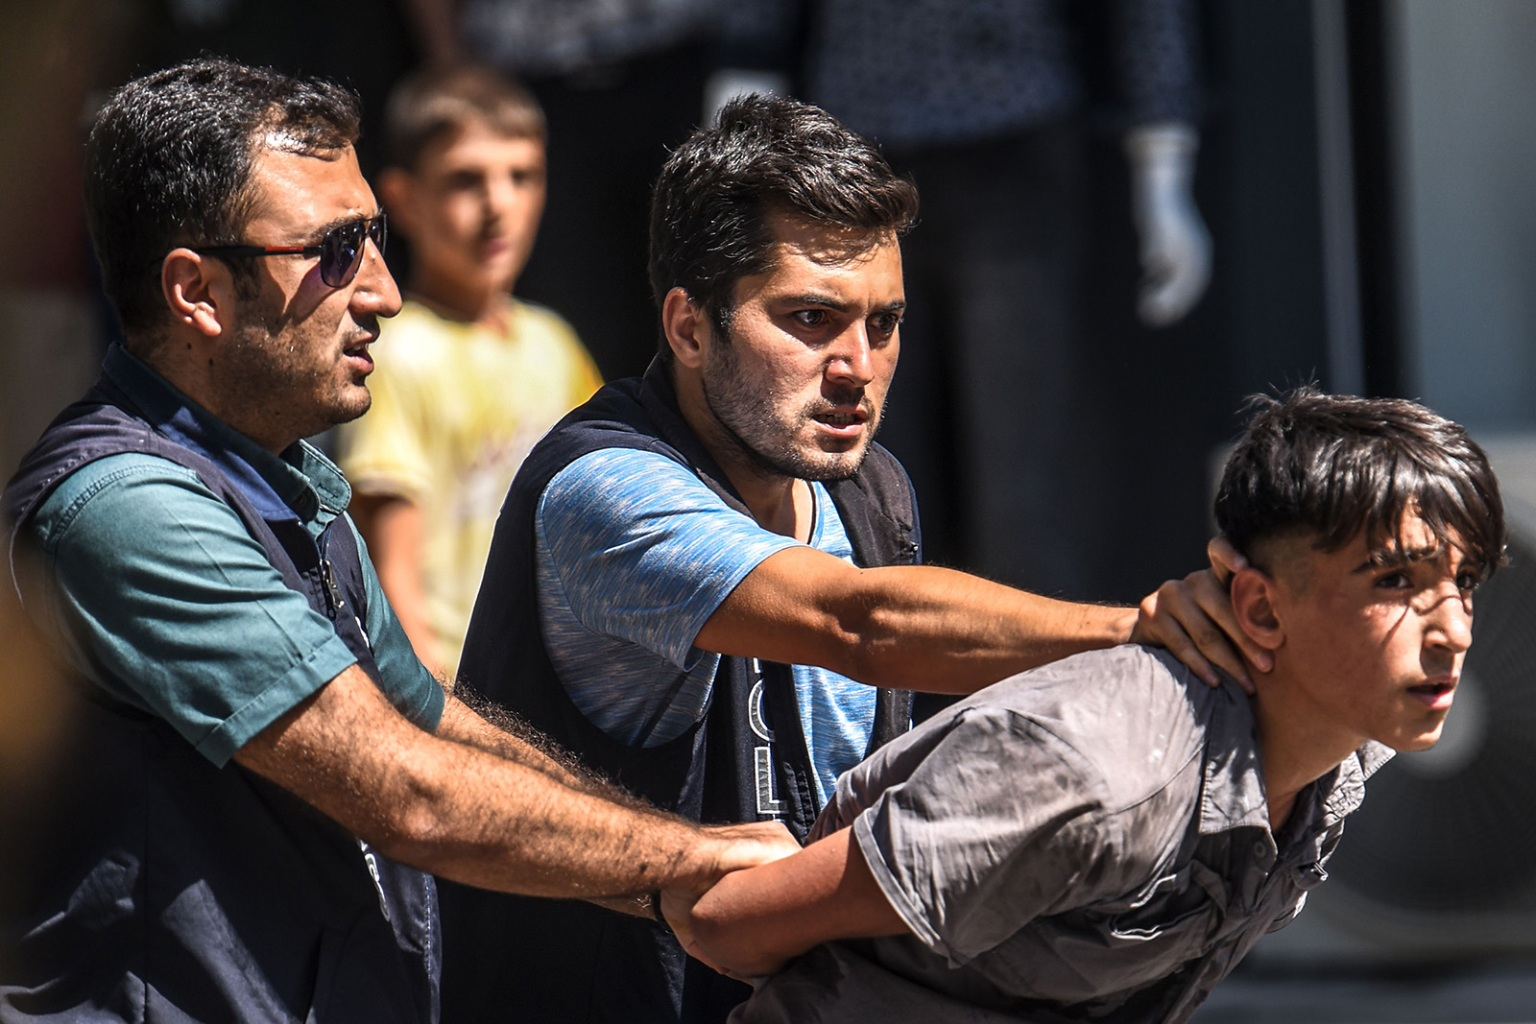 Turkish police officers detain a demonstrator during a protest against the replacement of Kurdish mayors with state officials in three cities, in Diyarbakir, eastern Turkey on Aug. 21. BULENT KILIC/AFP/Getty Images